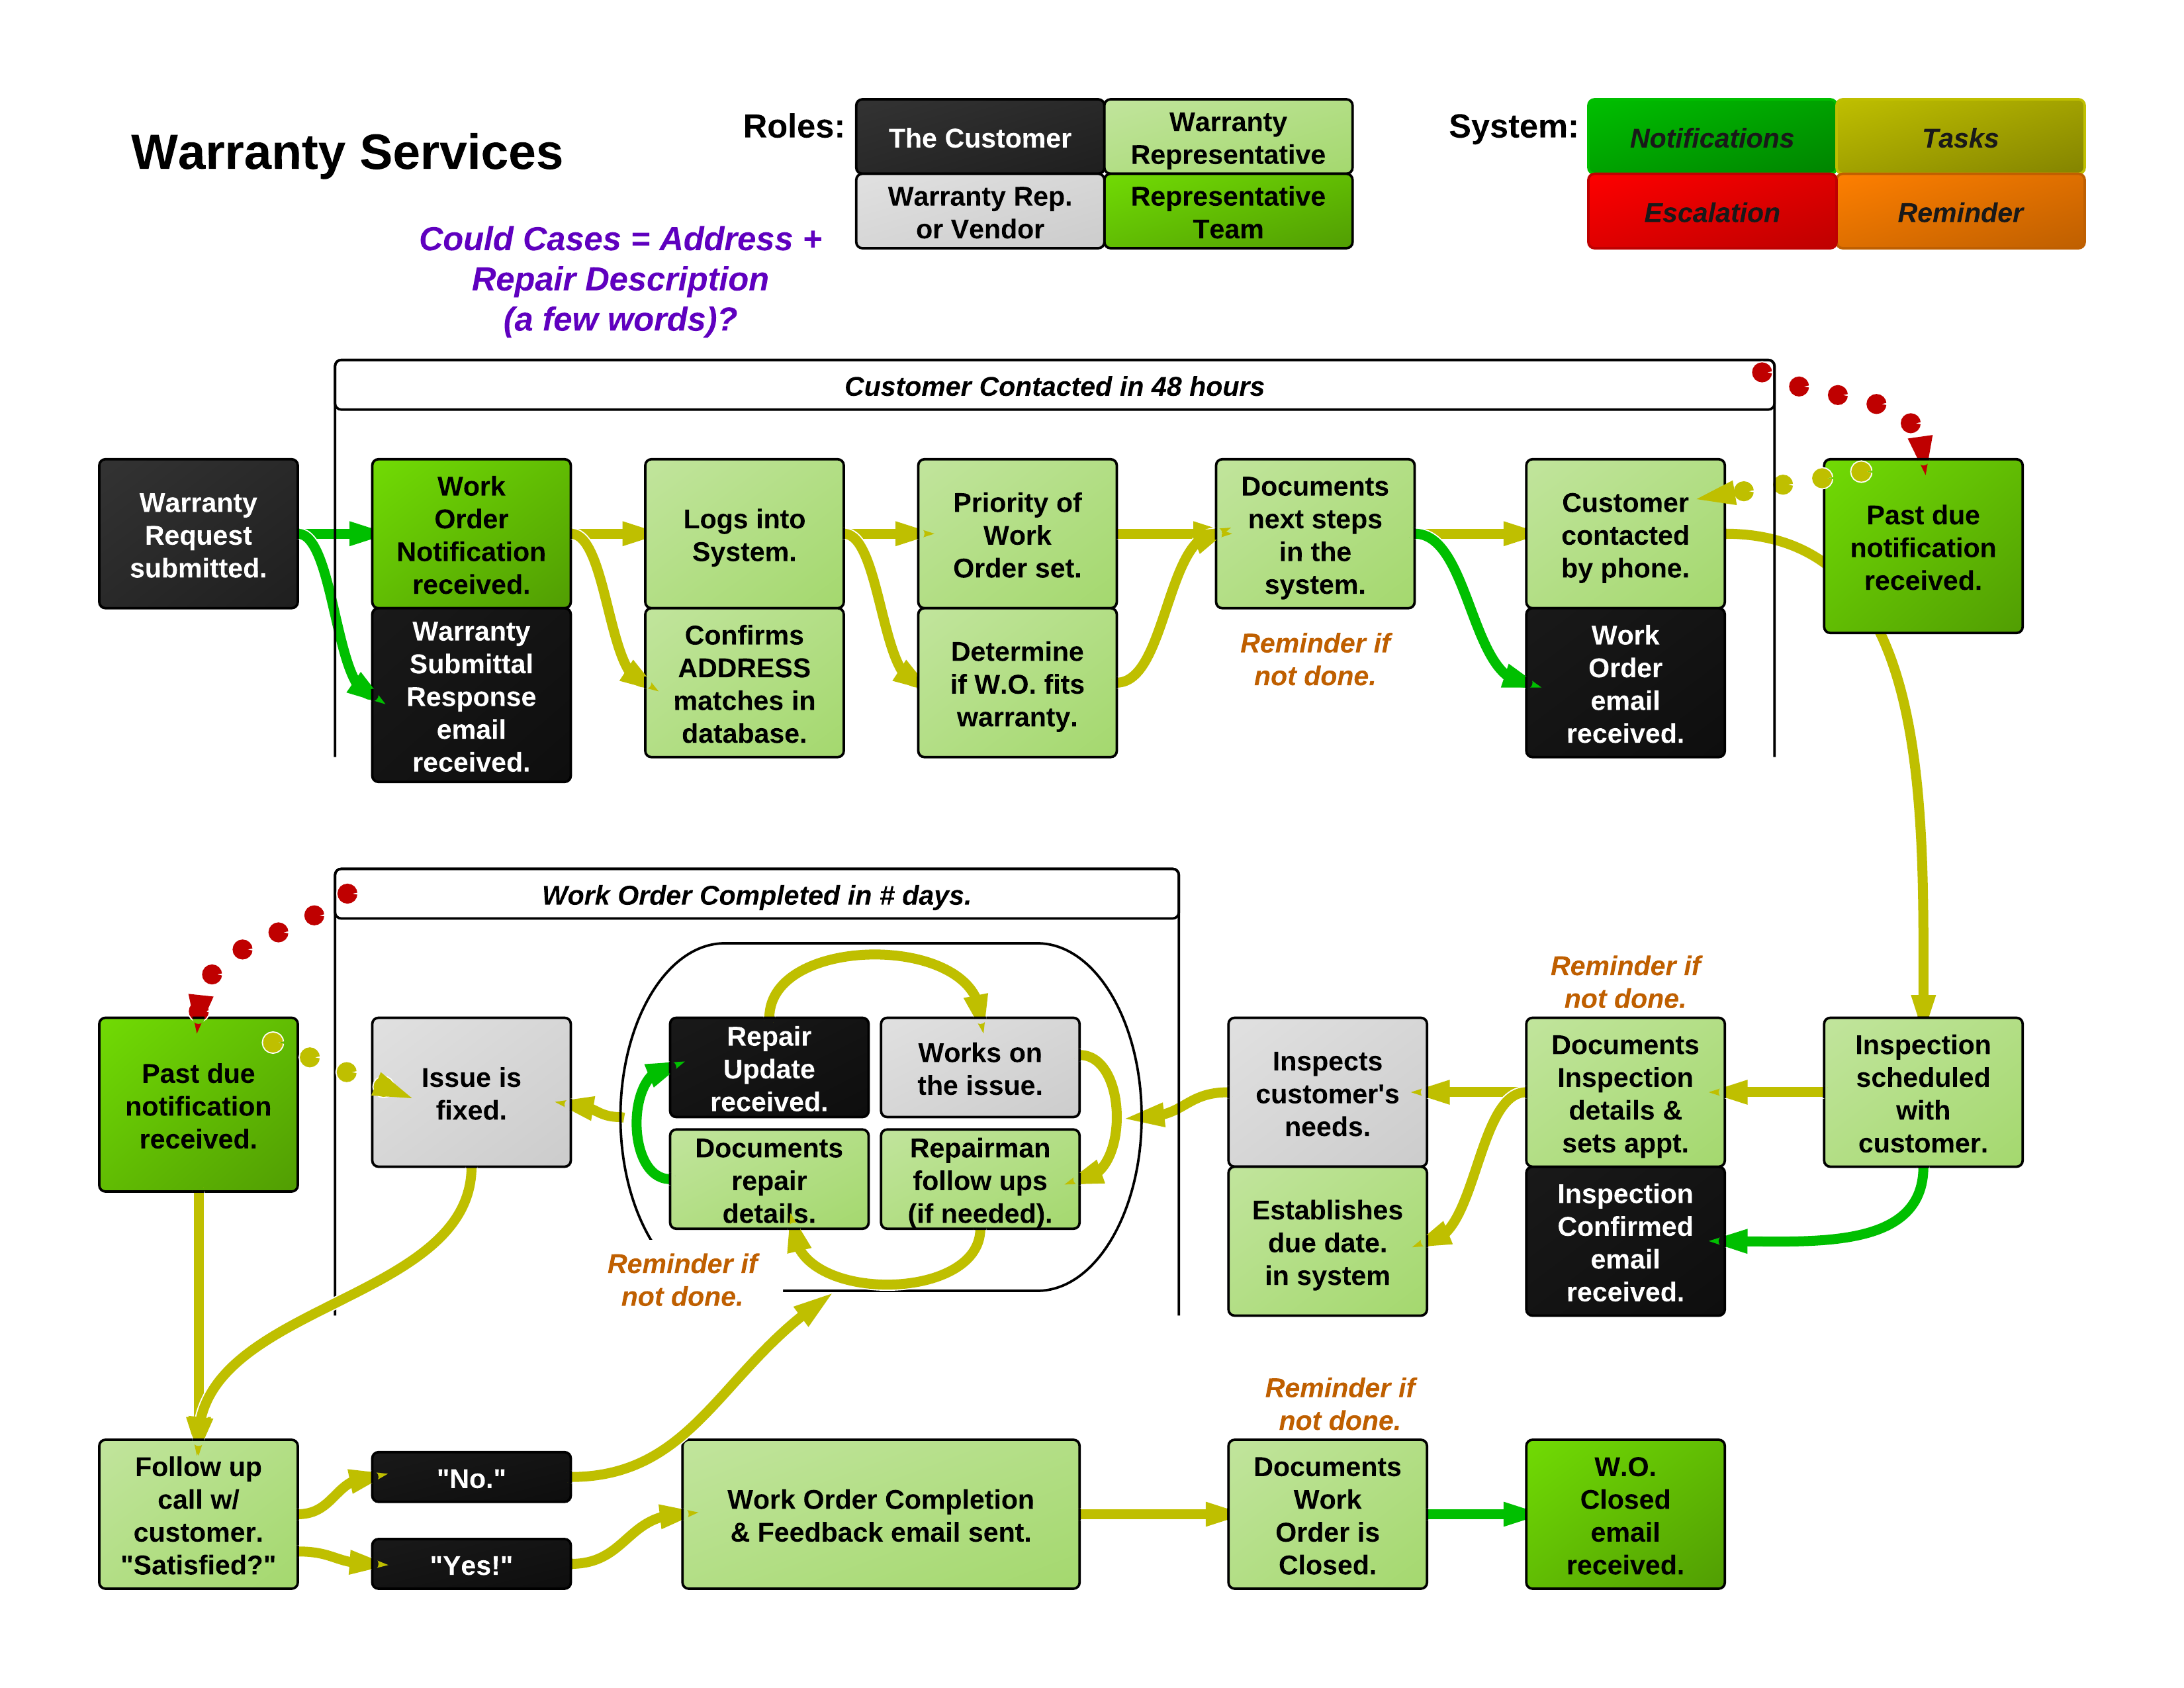 complex process map | LR Customer Experience Journey Map ...